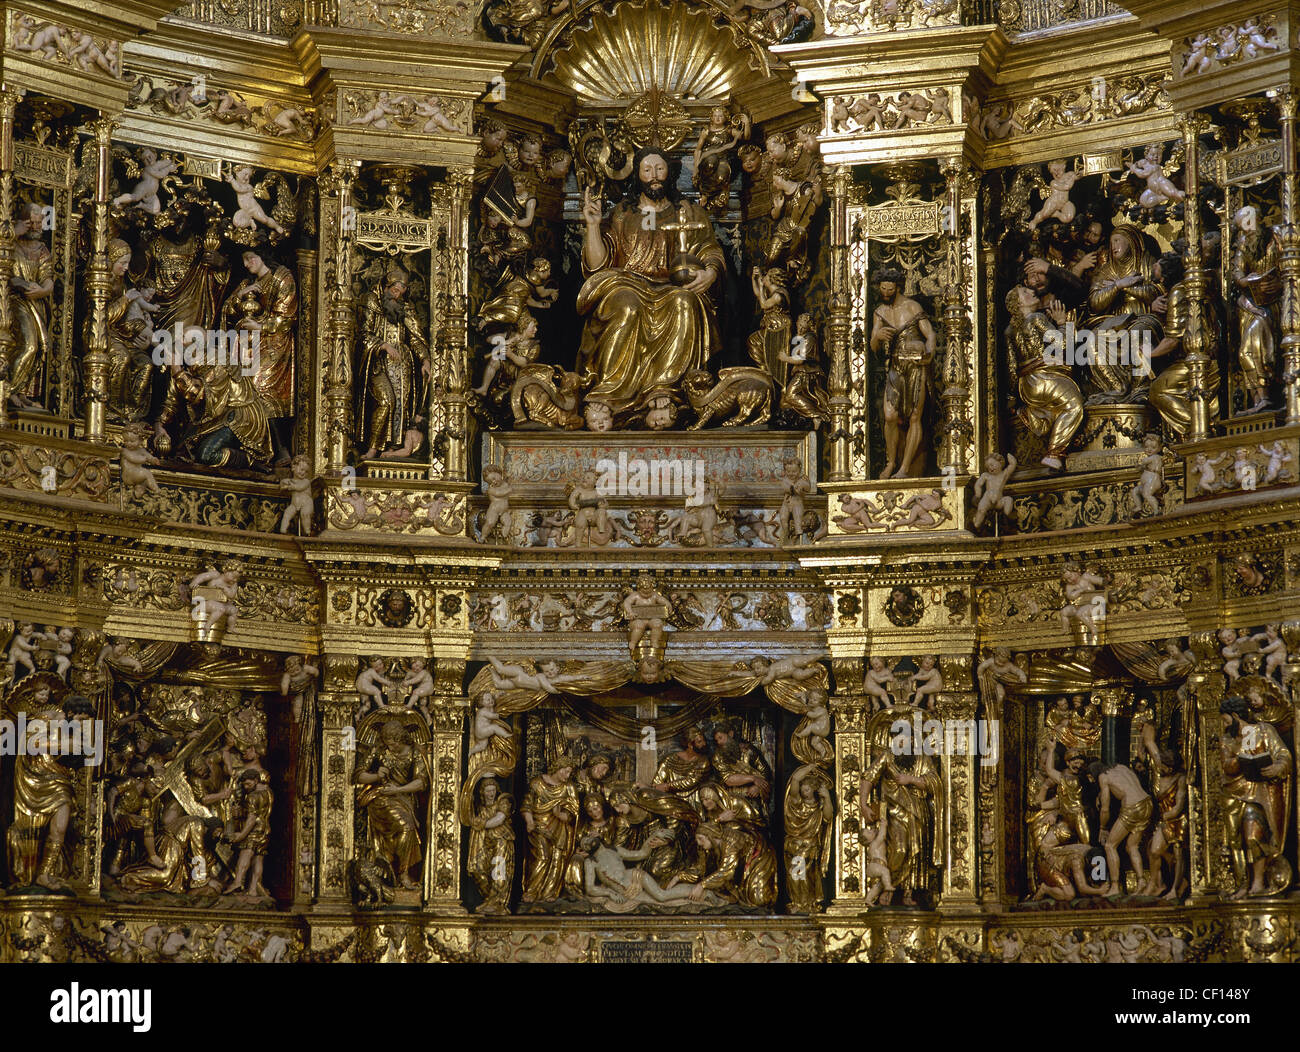 Spain. Cathedral of Saint Dominic of la Calzada. Altarpiece by Damia Forment. 1537 - 1539. Detail. - Stock Image